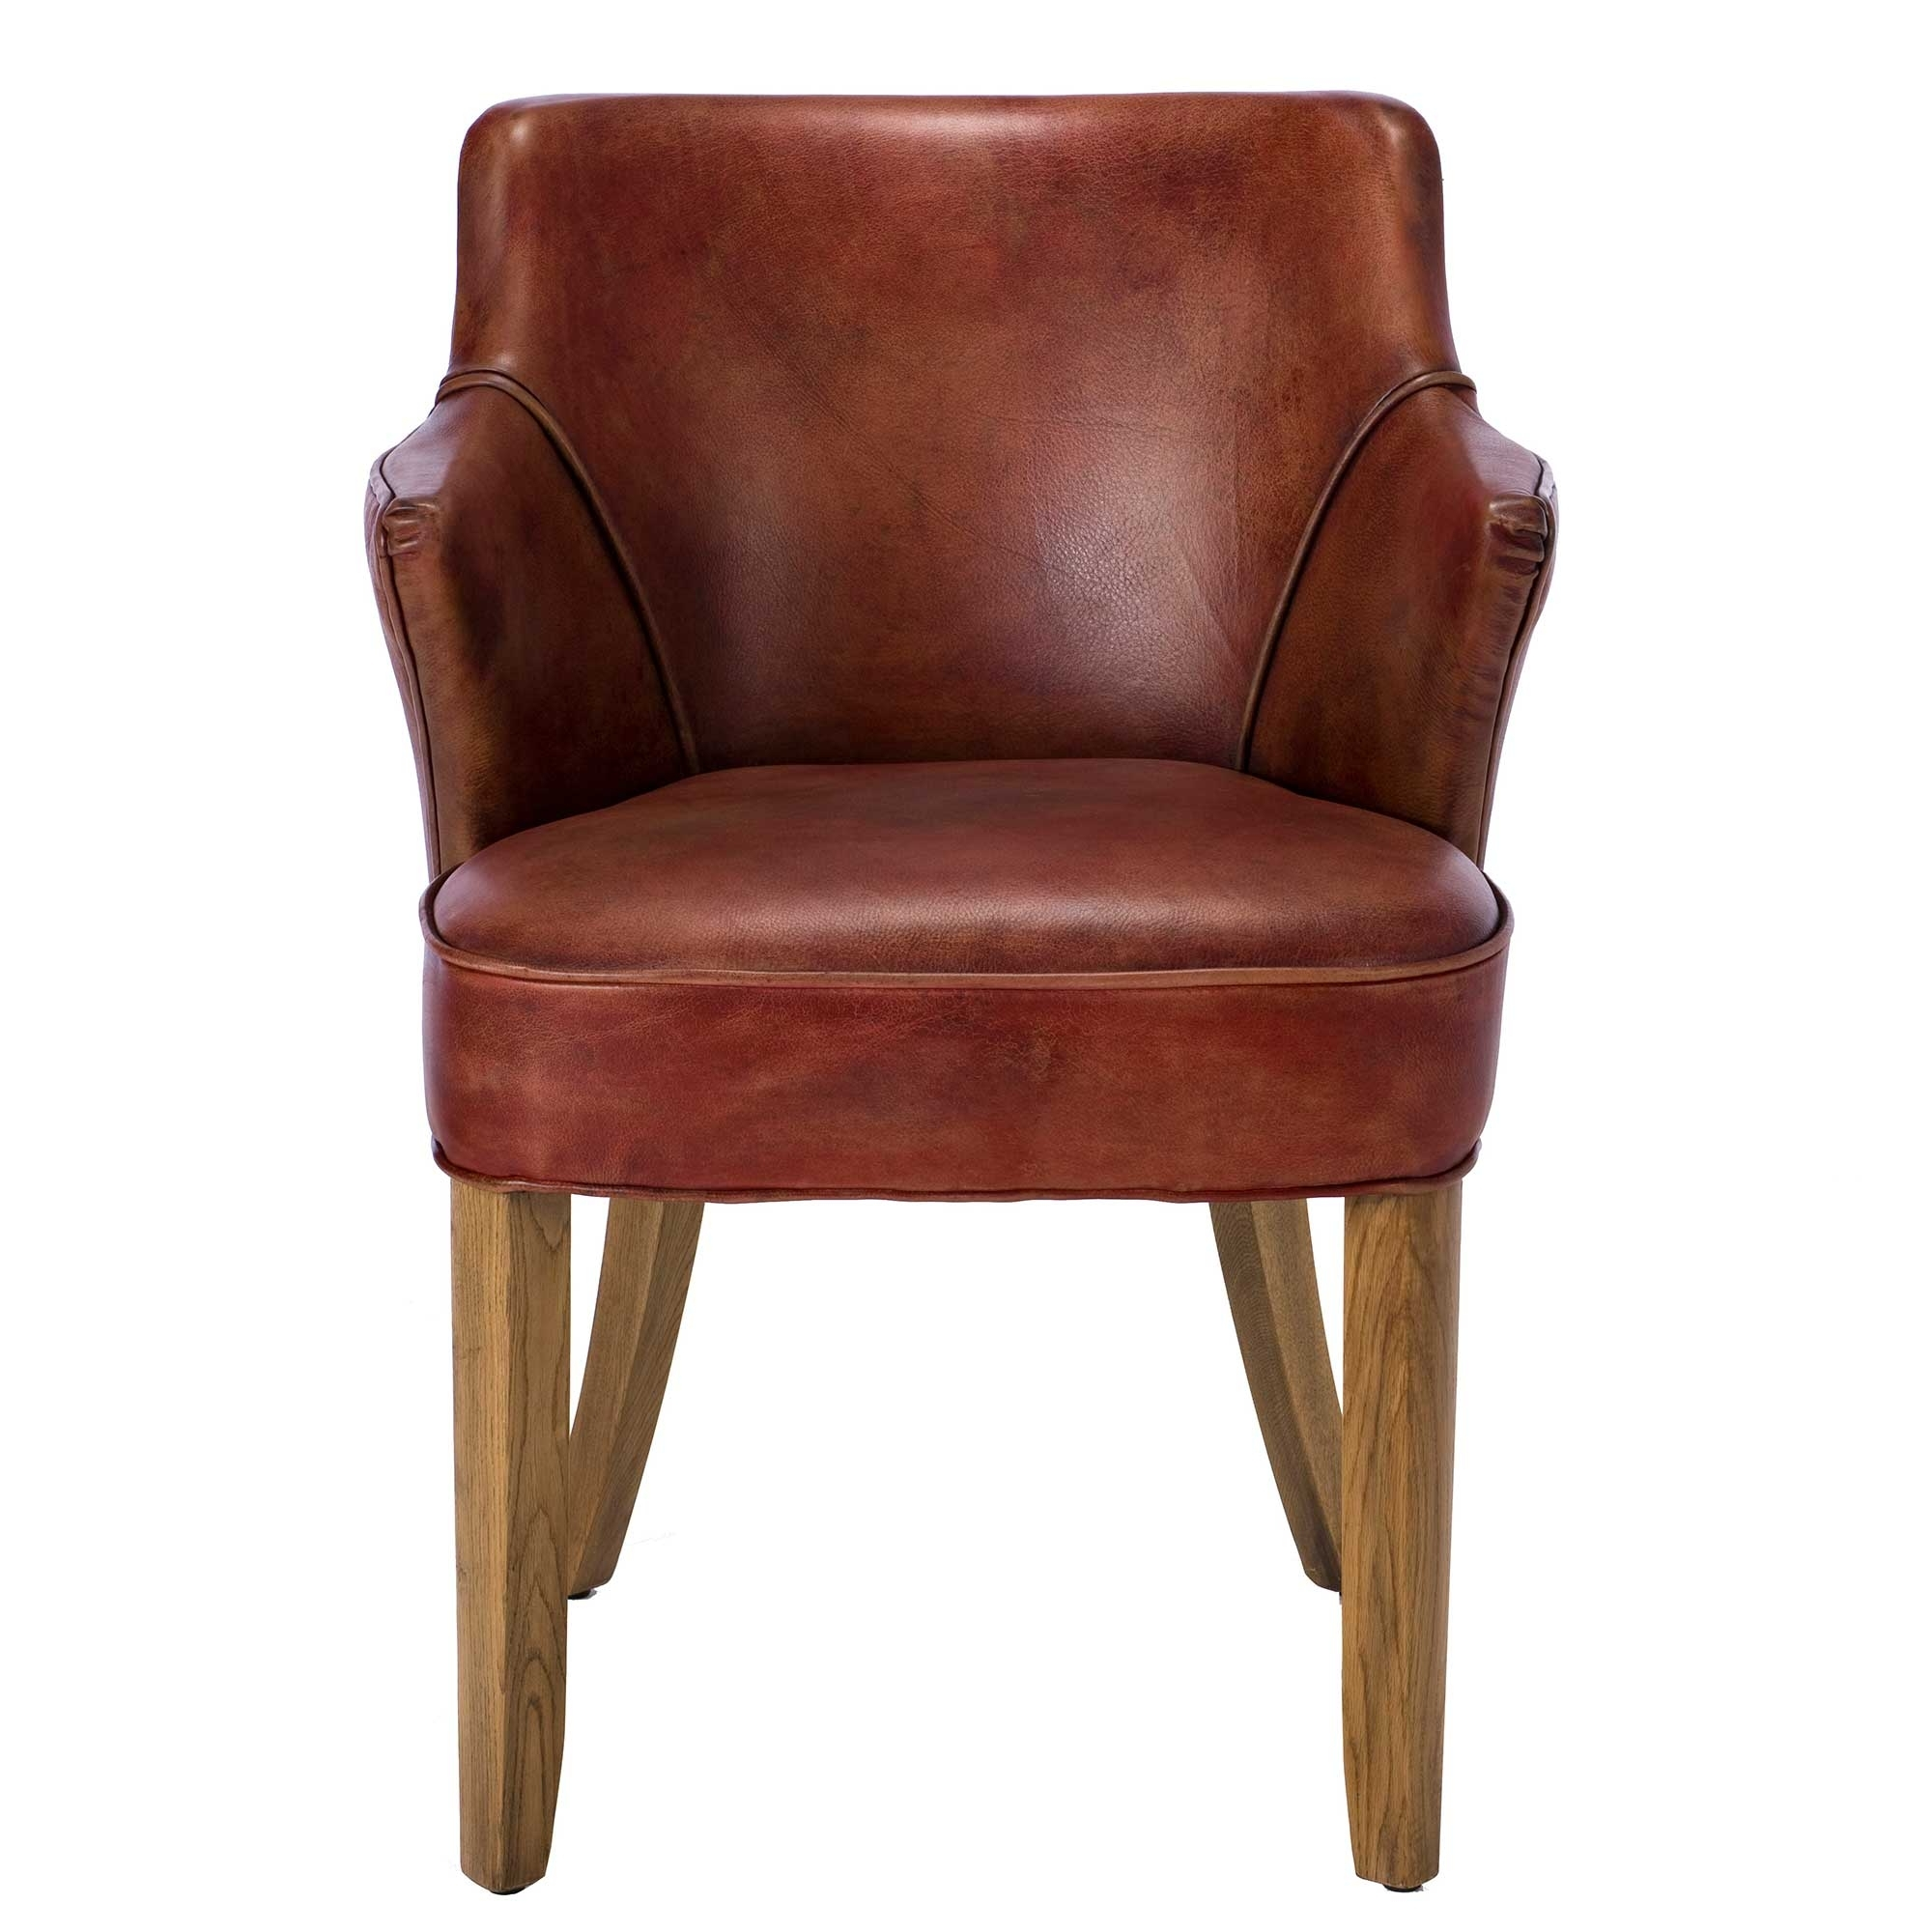 Current Red Leather Dining Chairs In Timothy Oulton Lannister Dining Chair, Vagabond Red Leather (View 2 of 25)